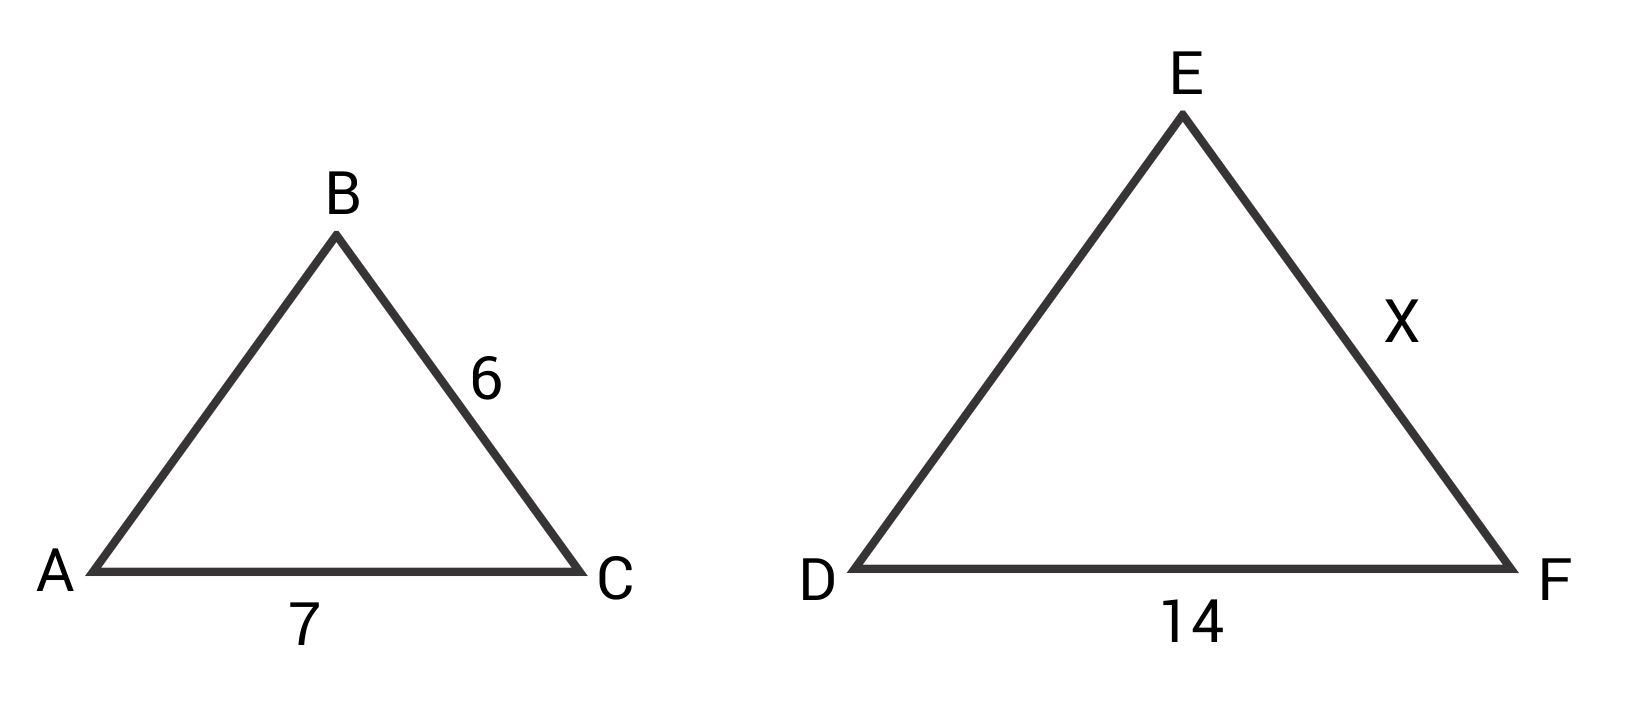 Similar triangles with side lengths 6 and 7 versus x and 14